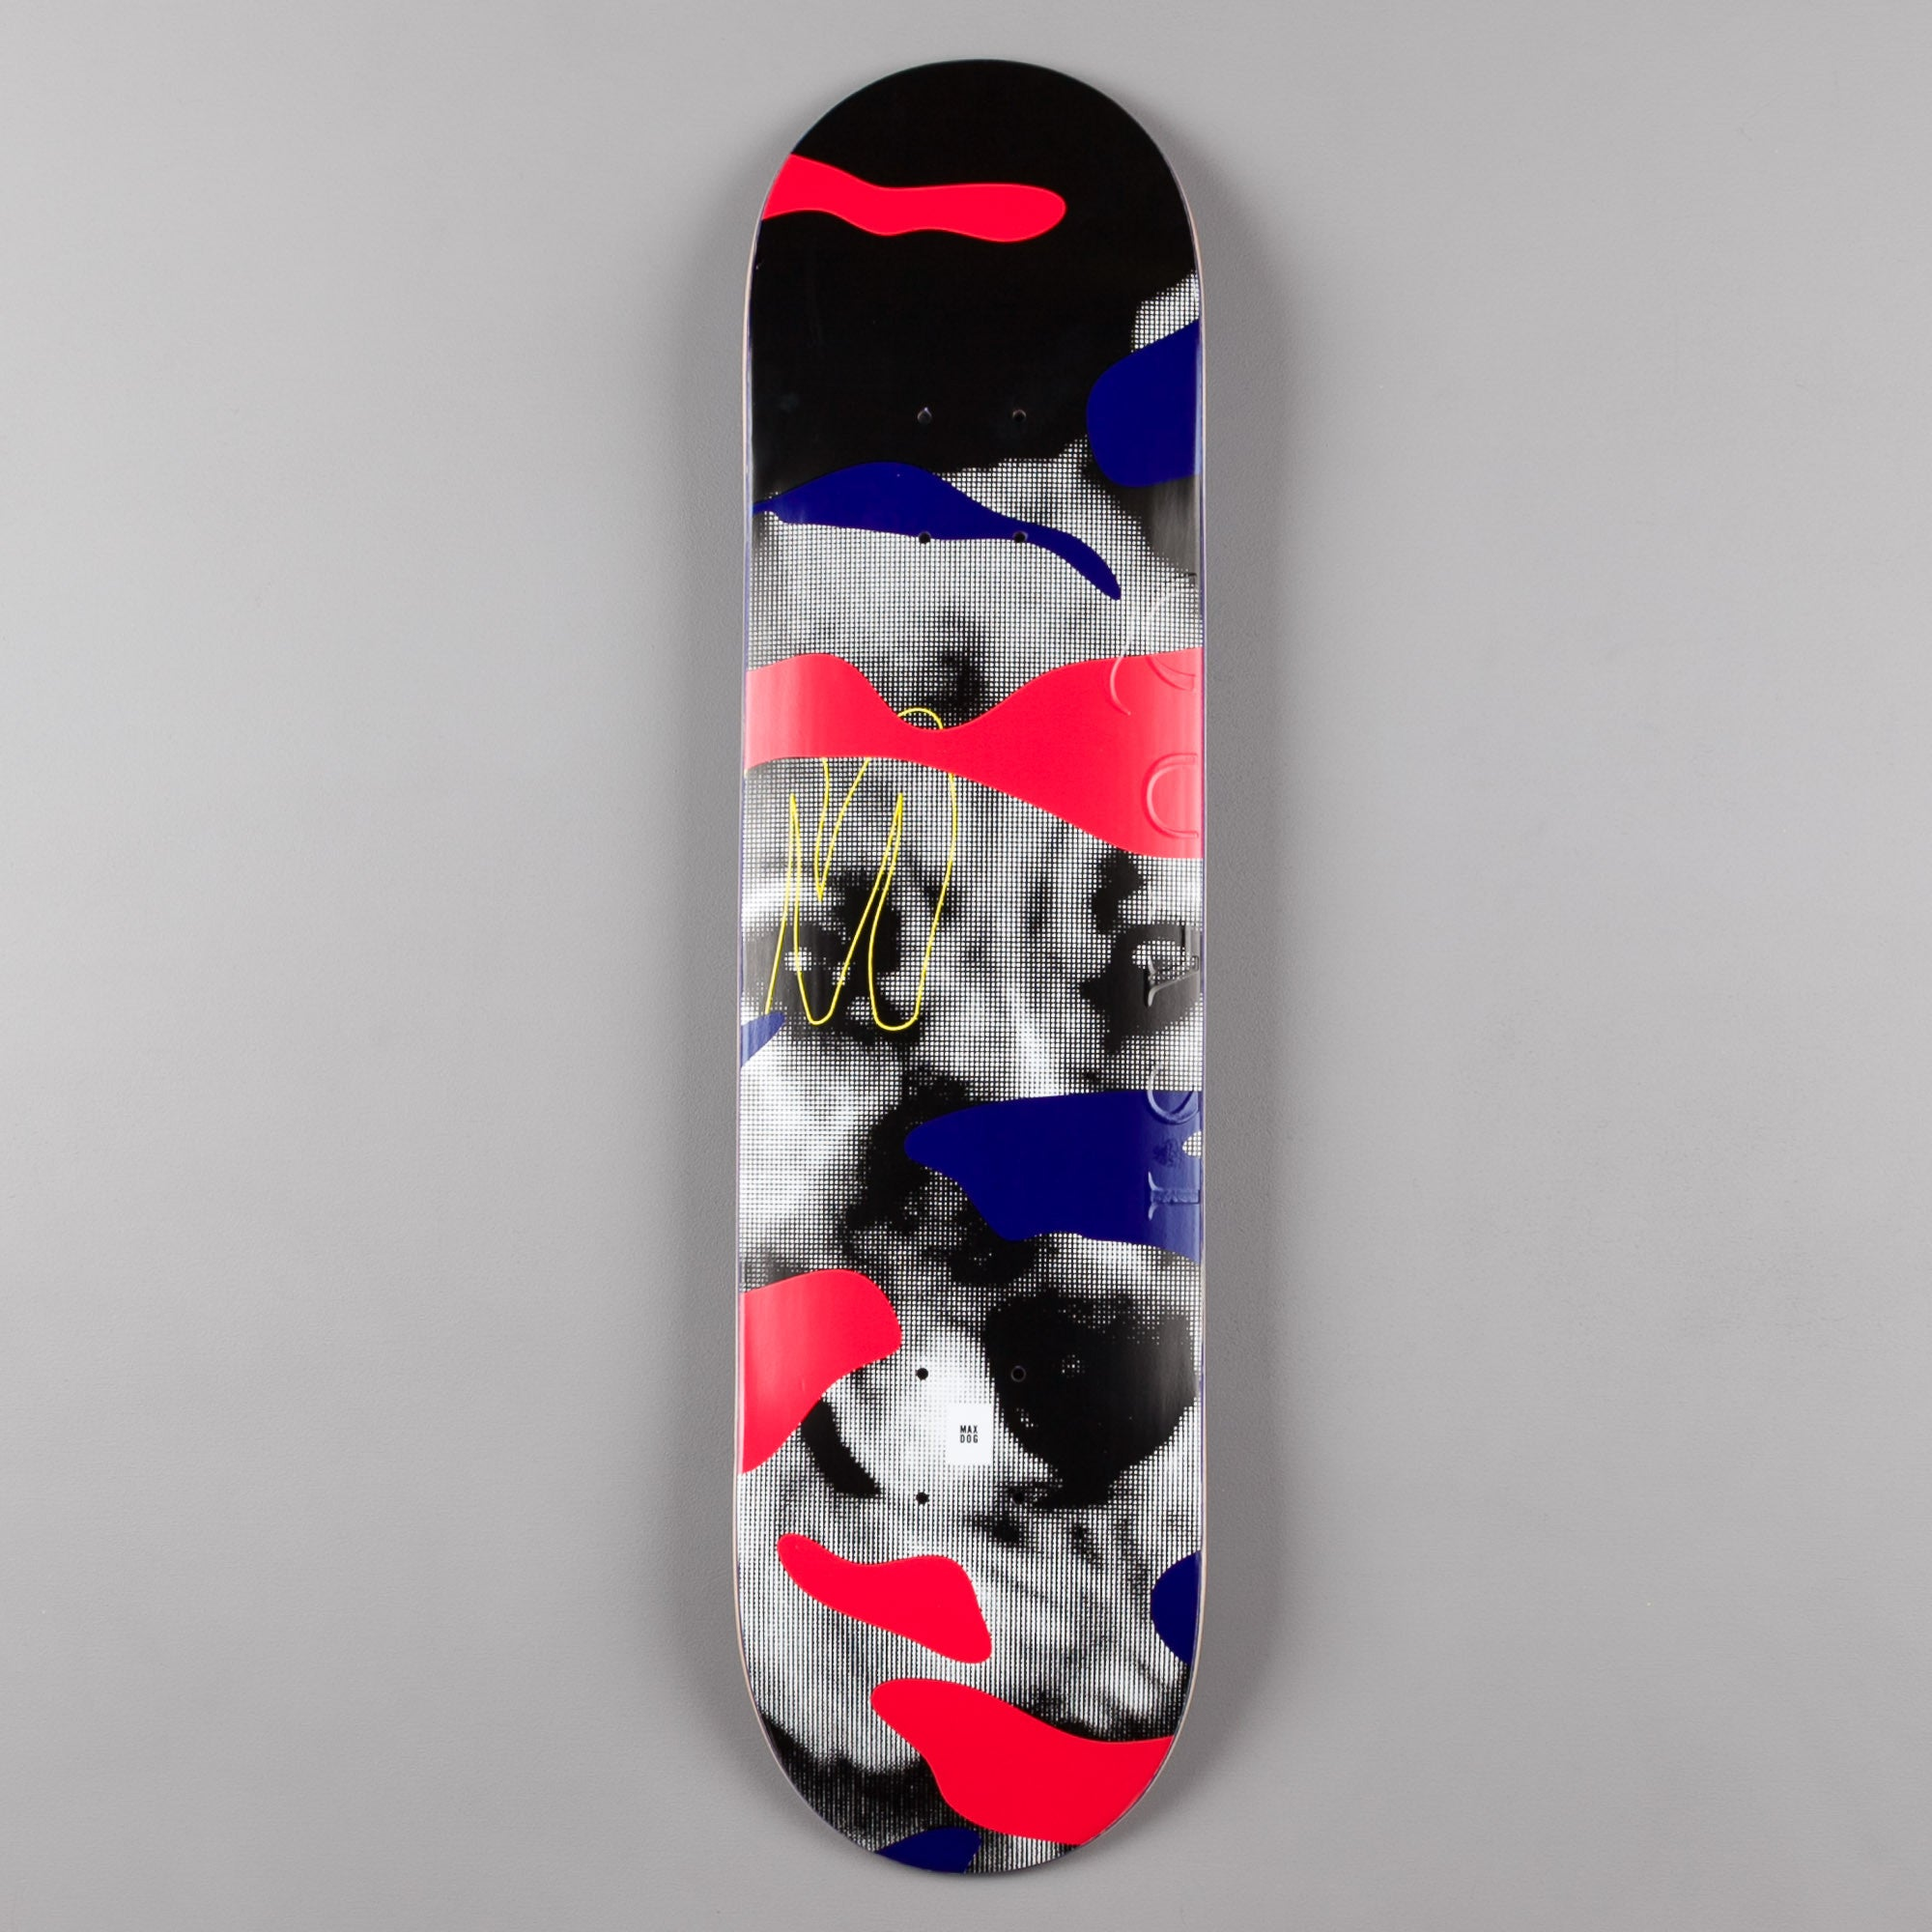 Quasi Skateboards Crockett Maxdog (One) Deck - Red - 8.00""